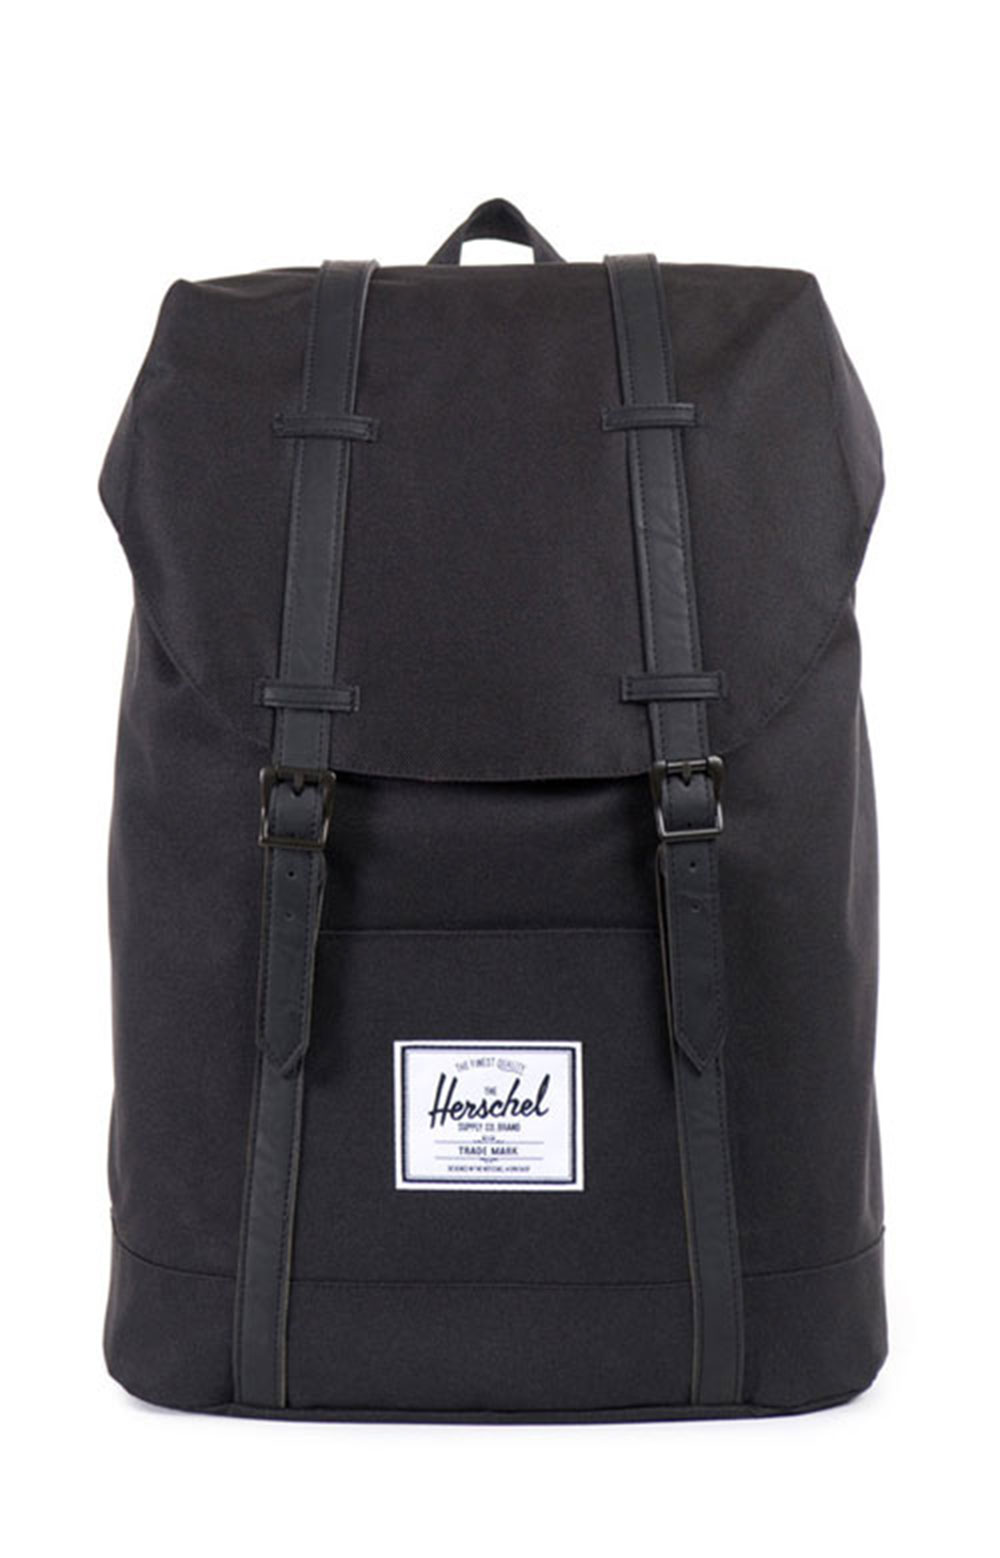 Retreat Backpack - Black/Black PU